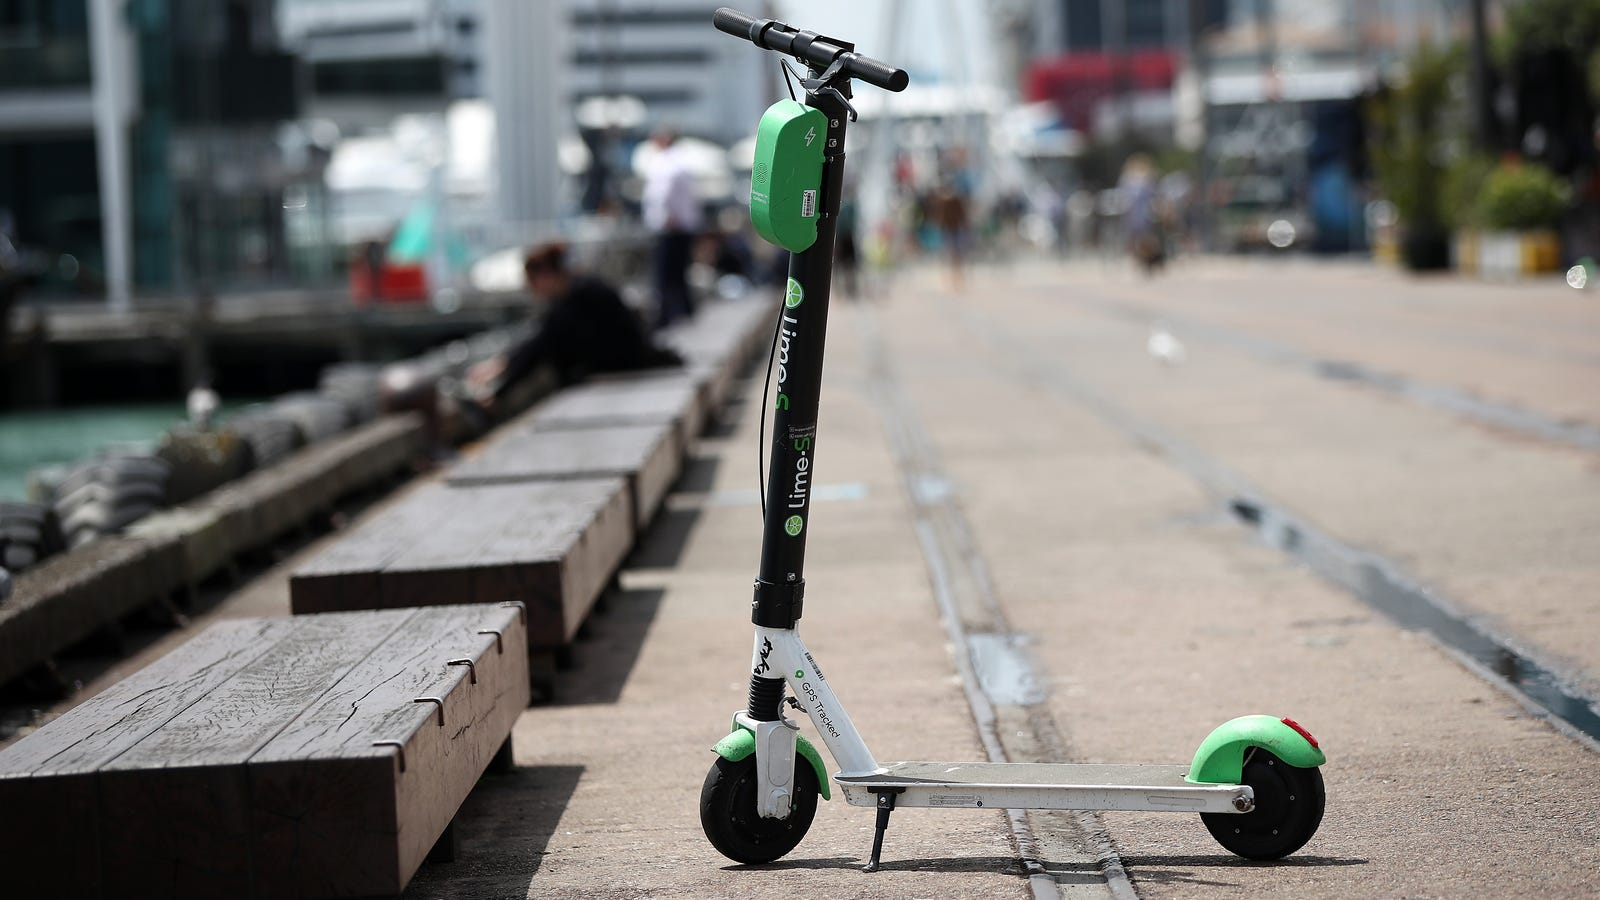 Lime Reportedly Pulls Glitchy E-Scooters in Switzerland Following Abrupt Braking, Injuries